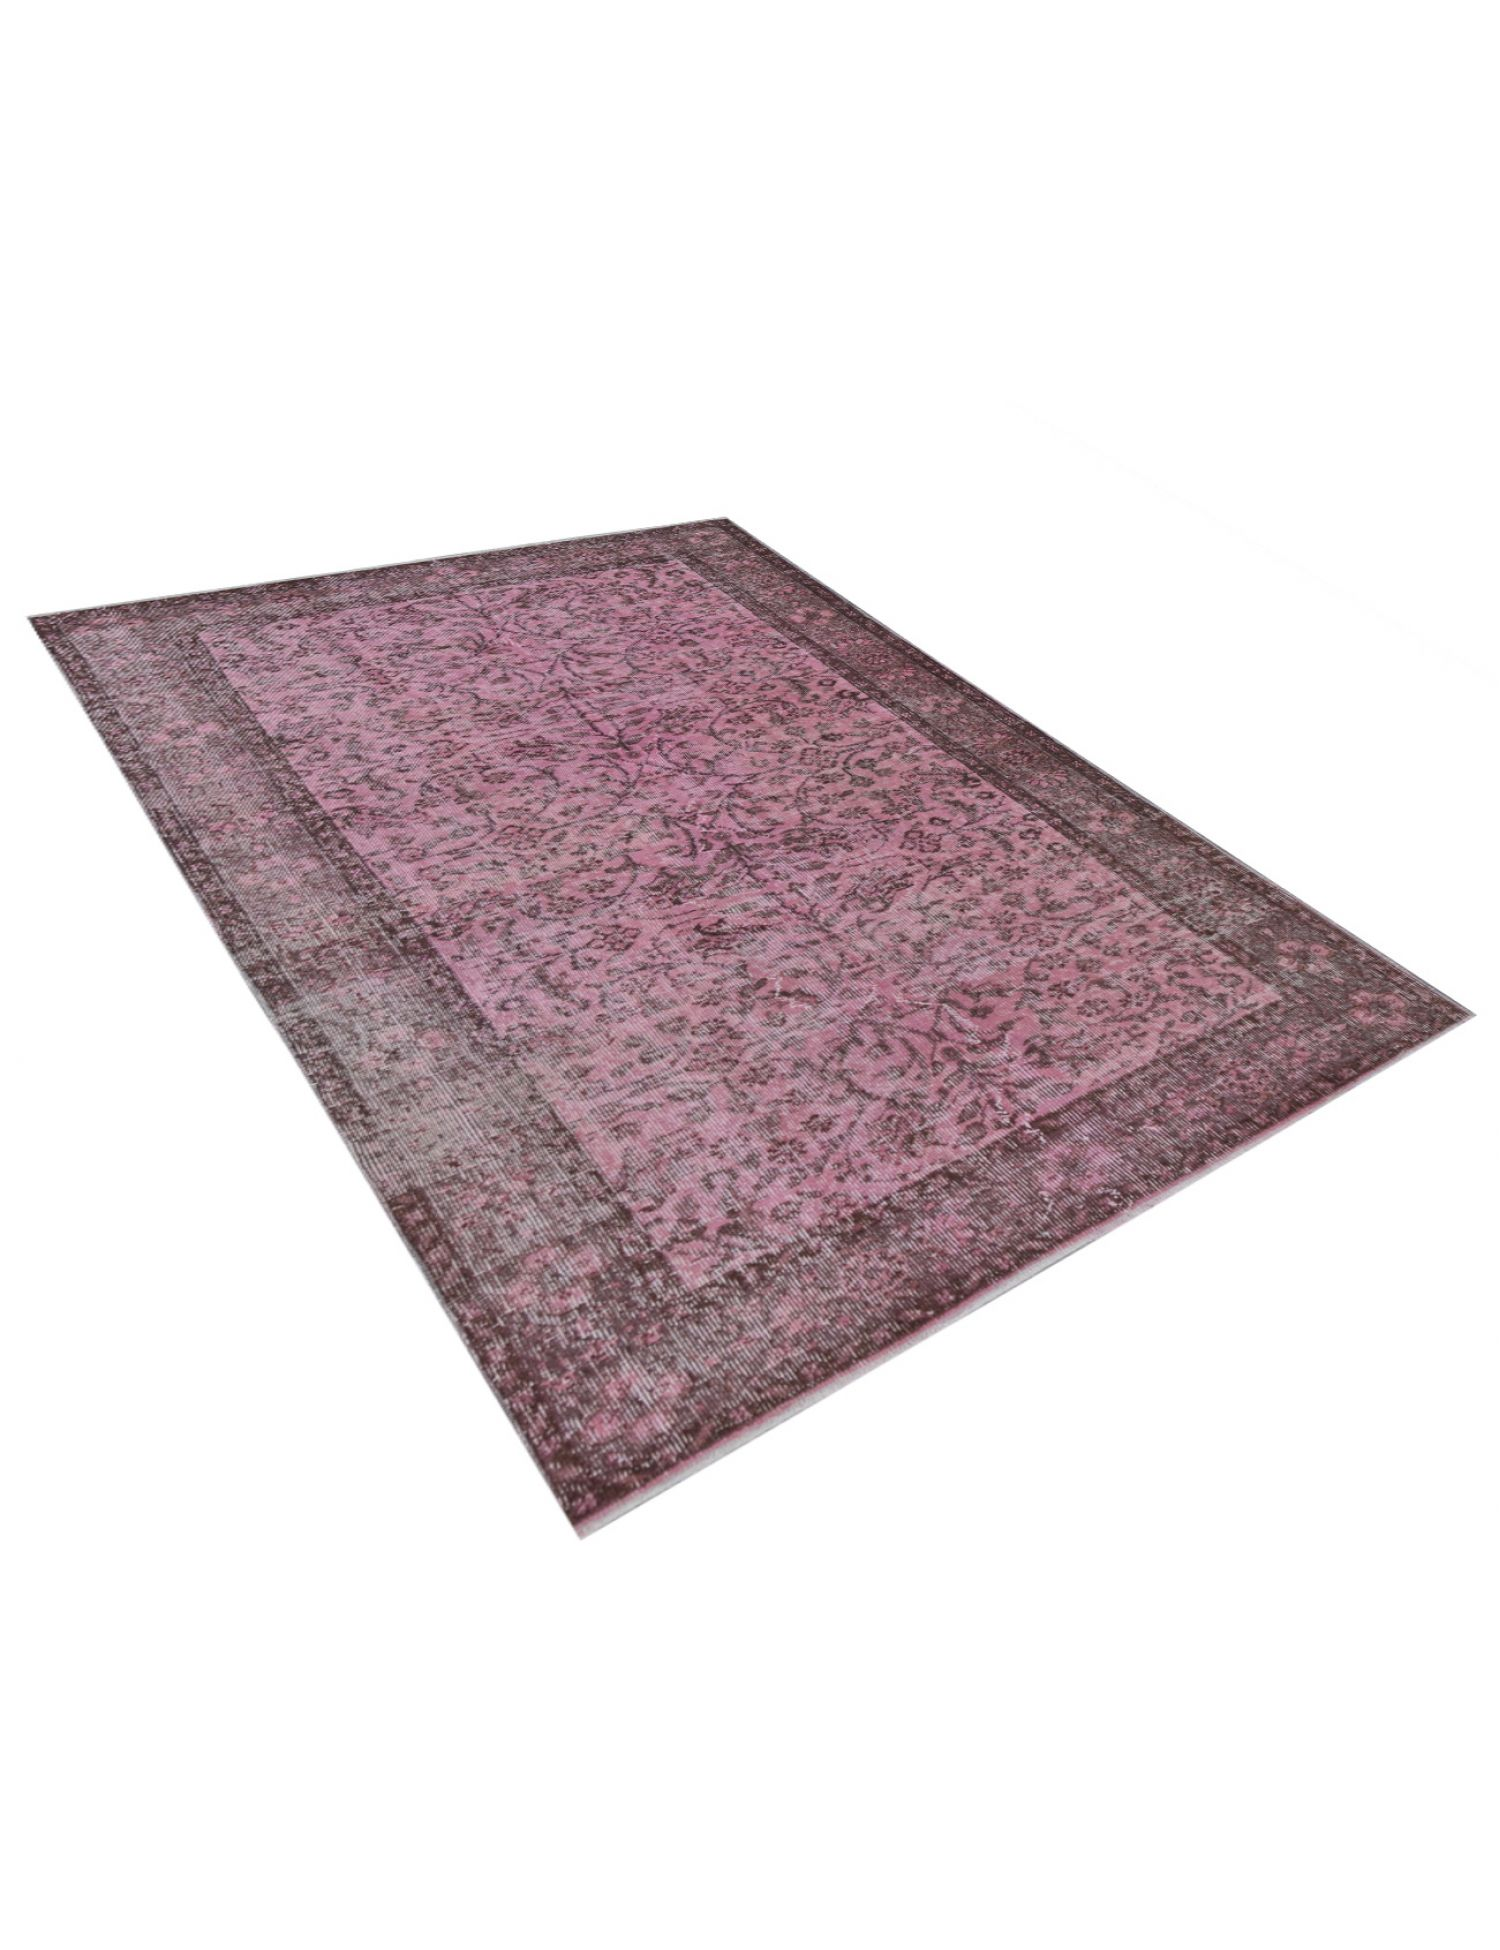 Vintage Carpet  purple <br/>227 x 125 cm